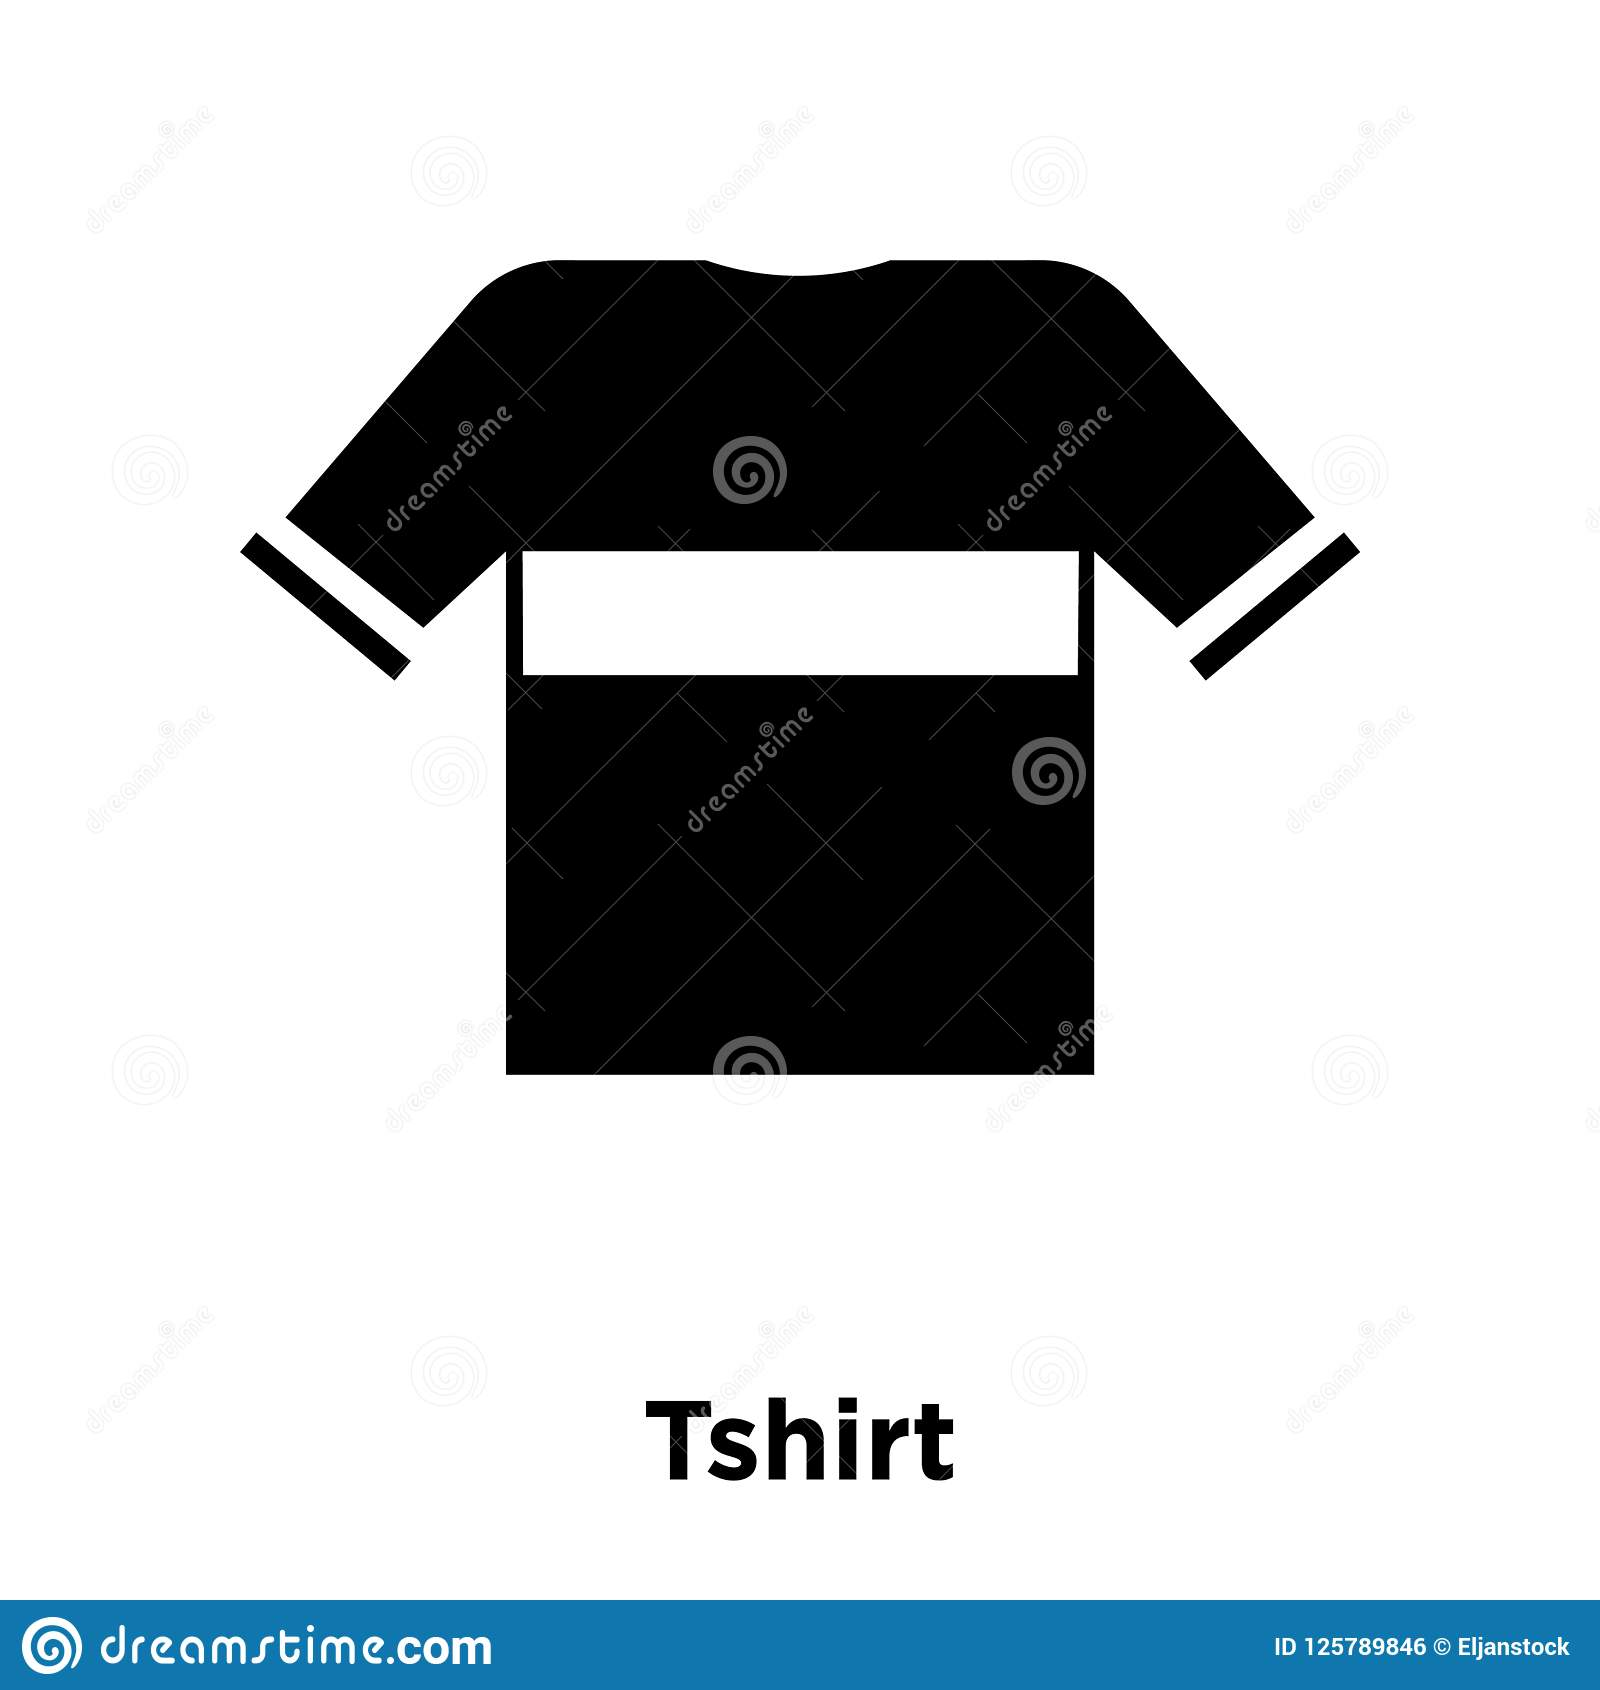 tshirt icon vector isolated on white background logo concept of stock vector illustration of object element 125789846 dreamstime com